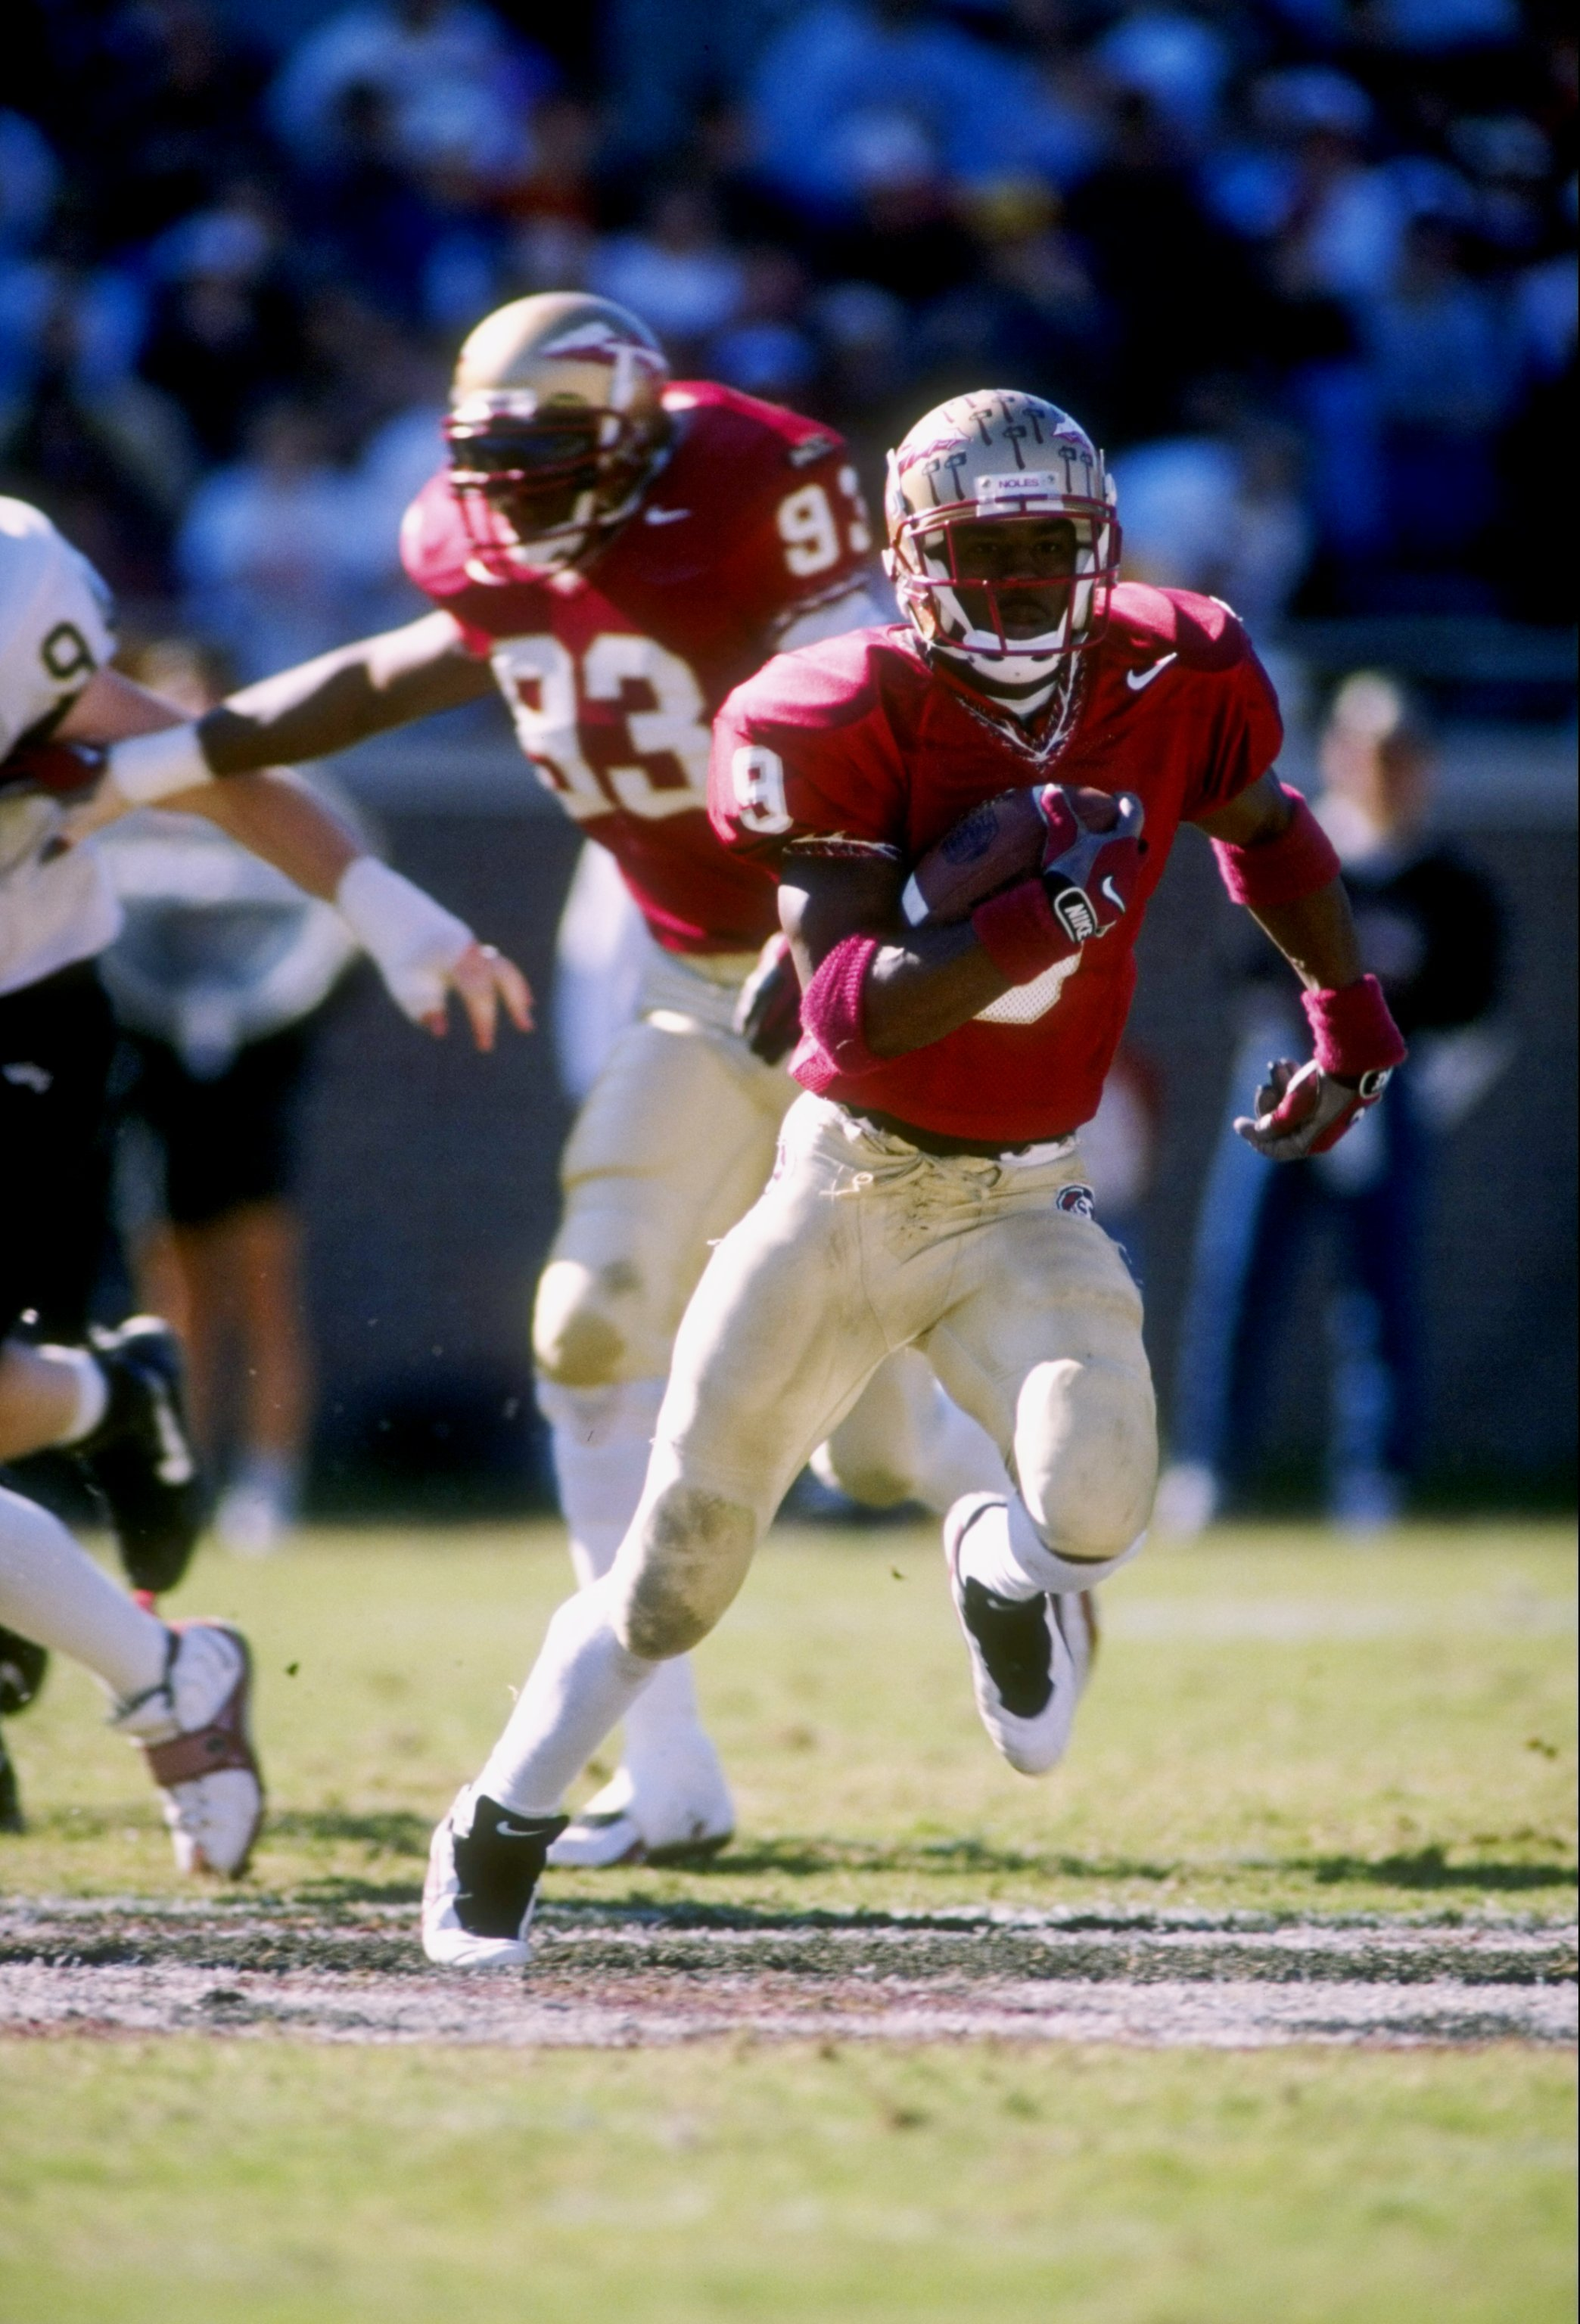 15 Nov 1997: Peter Warrick #9 of Florida State carries the football during the Seminoles 58-7 win over Wake Forest at Doak Campbell Stadium in Tallahassee, Florida.